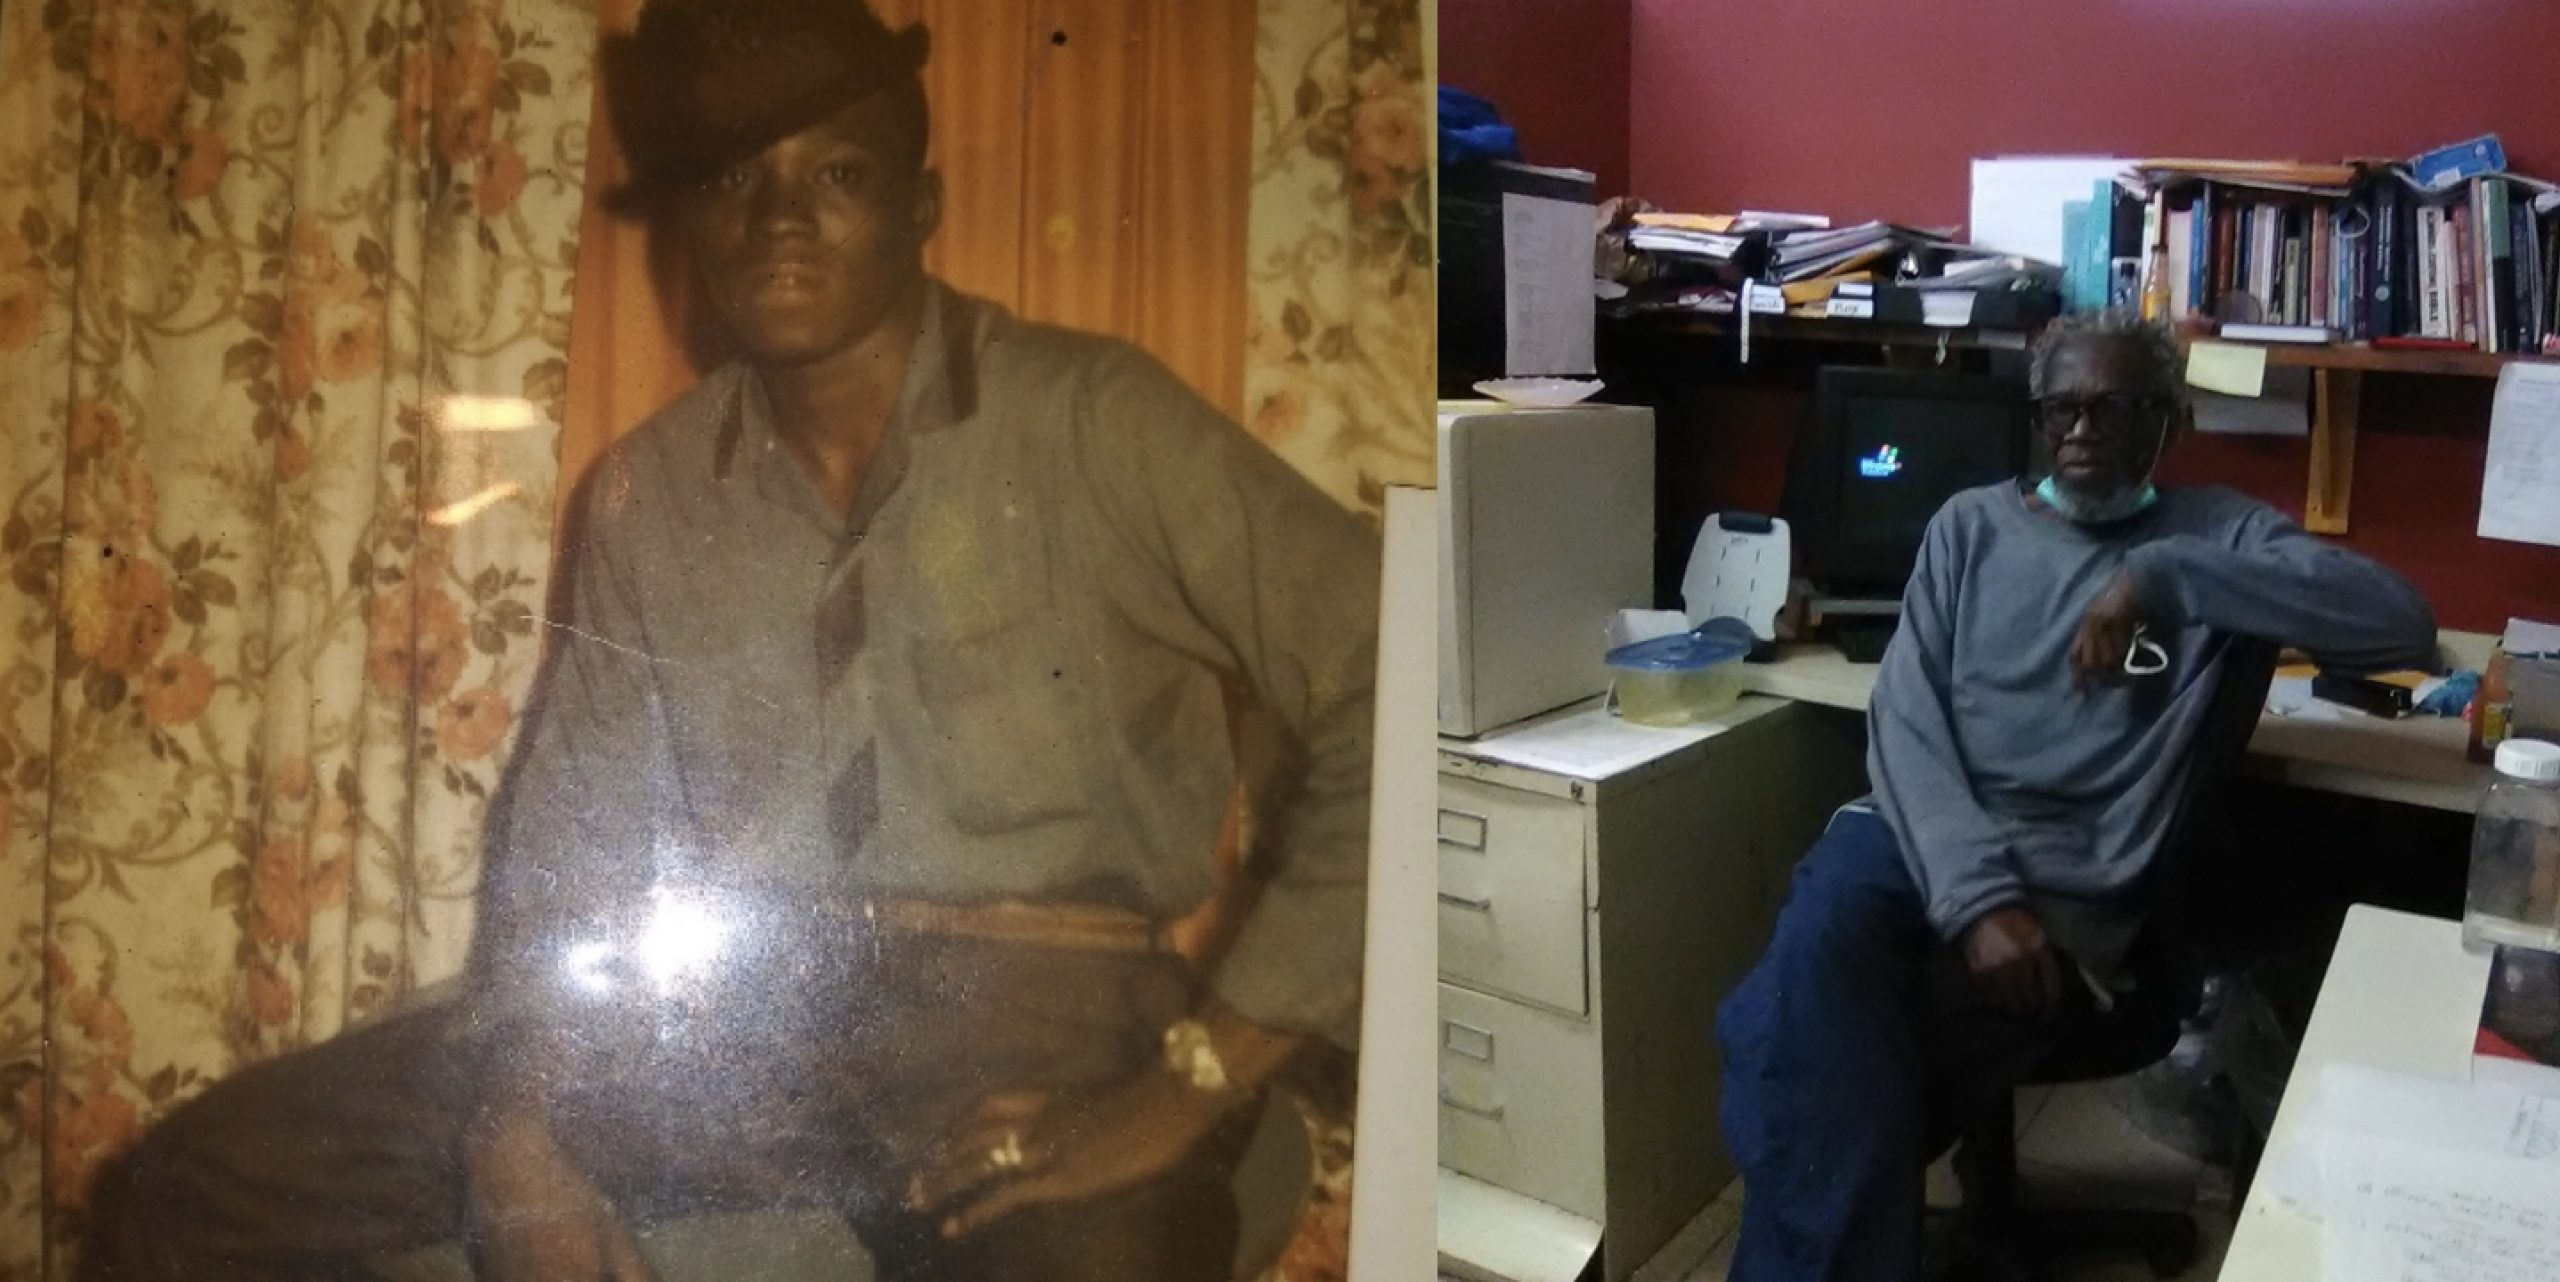 Angola prisoner files federal suit over 'bizarre and lawless' parole revocation